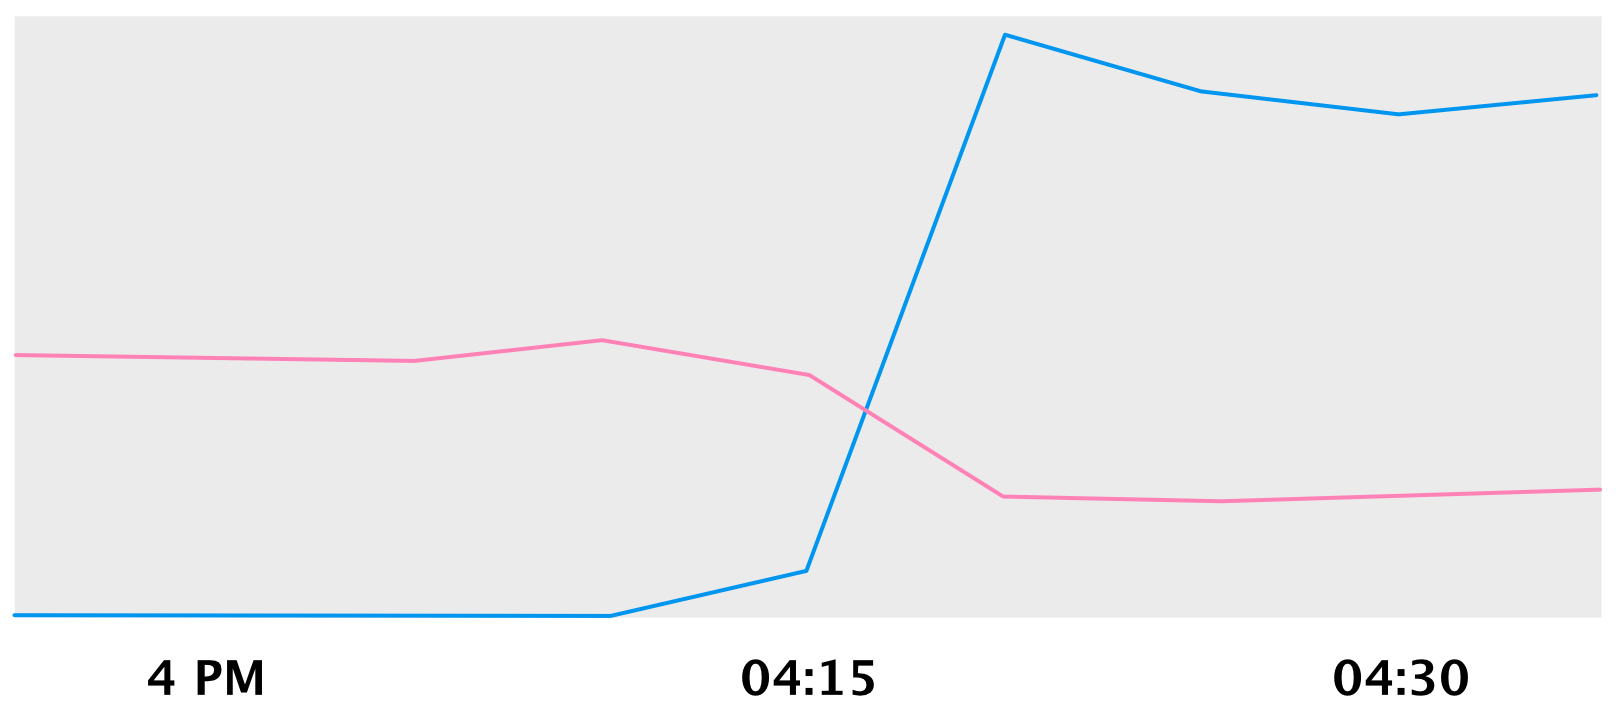 Movements (blue), Payments (pink) QPS